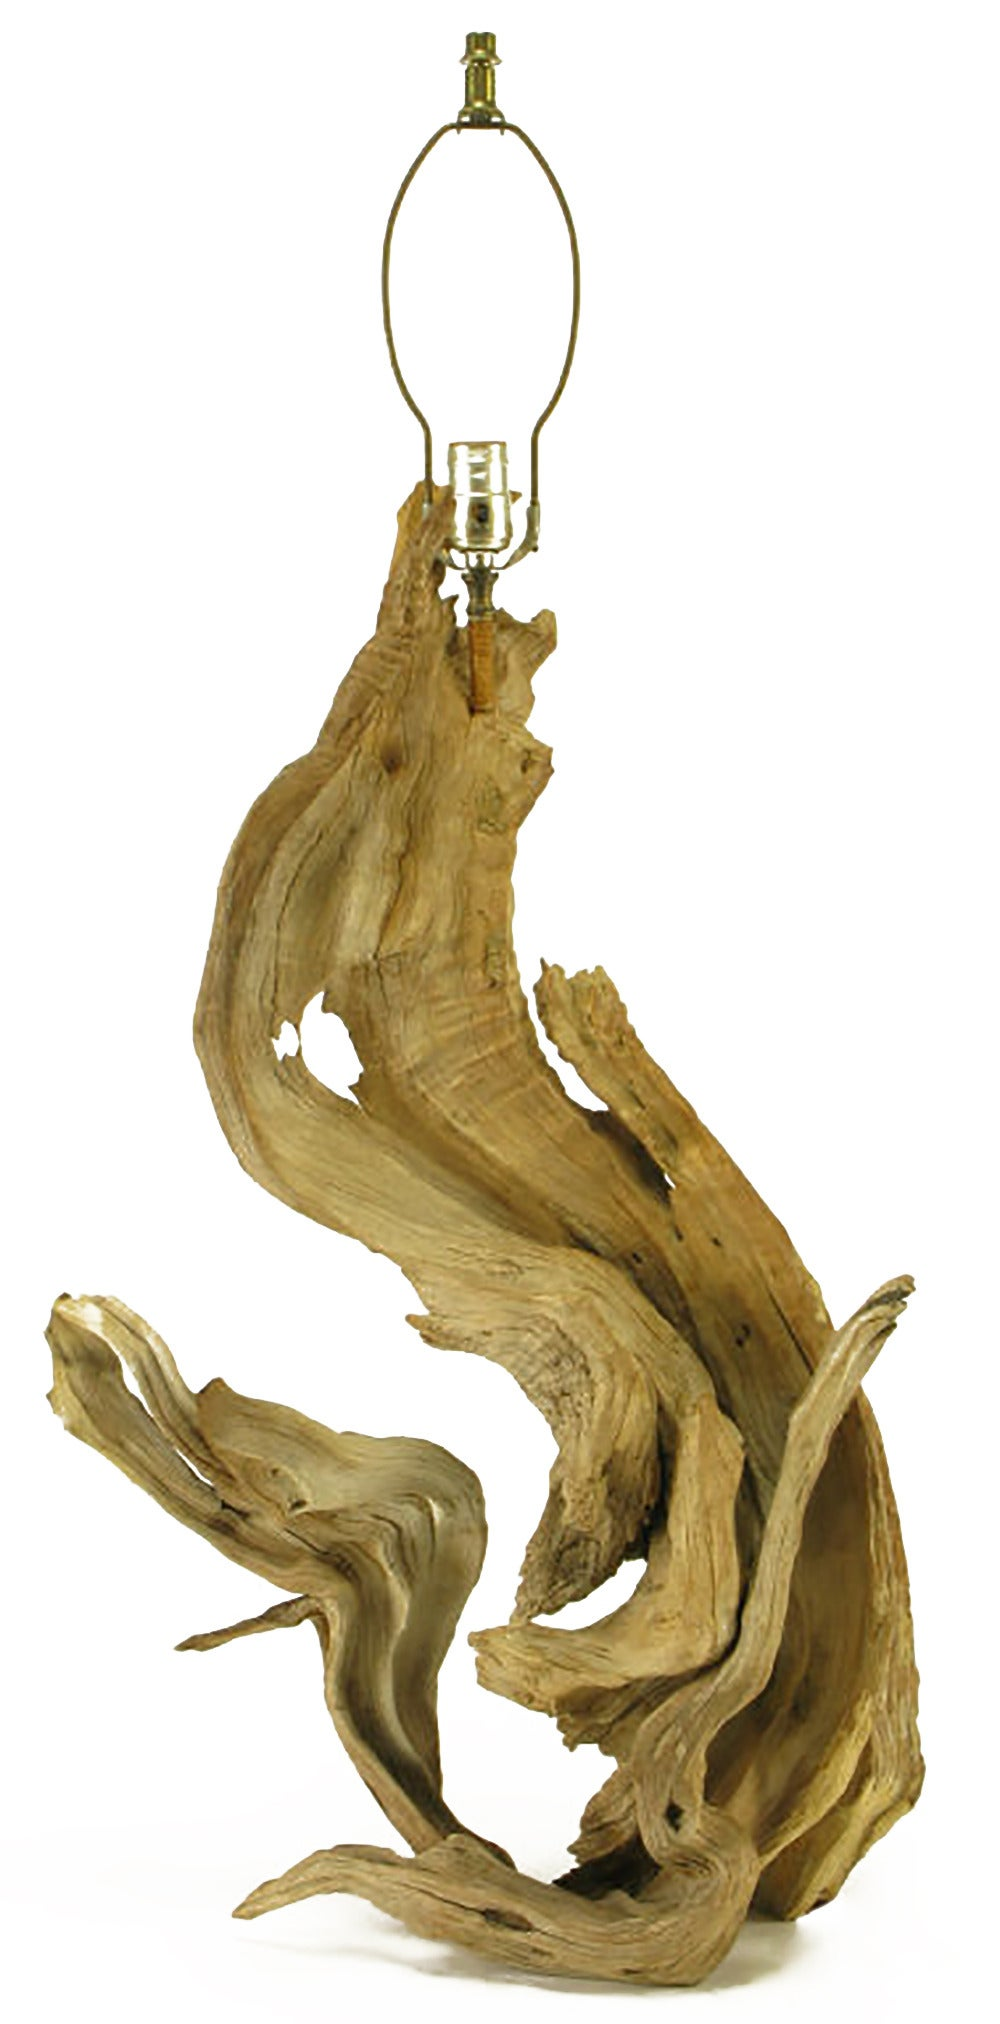 Natural S-shaped driftwood table lamp, sculpted by the winds and water of the ocean. Sold sans shade.